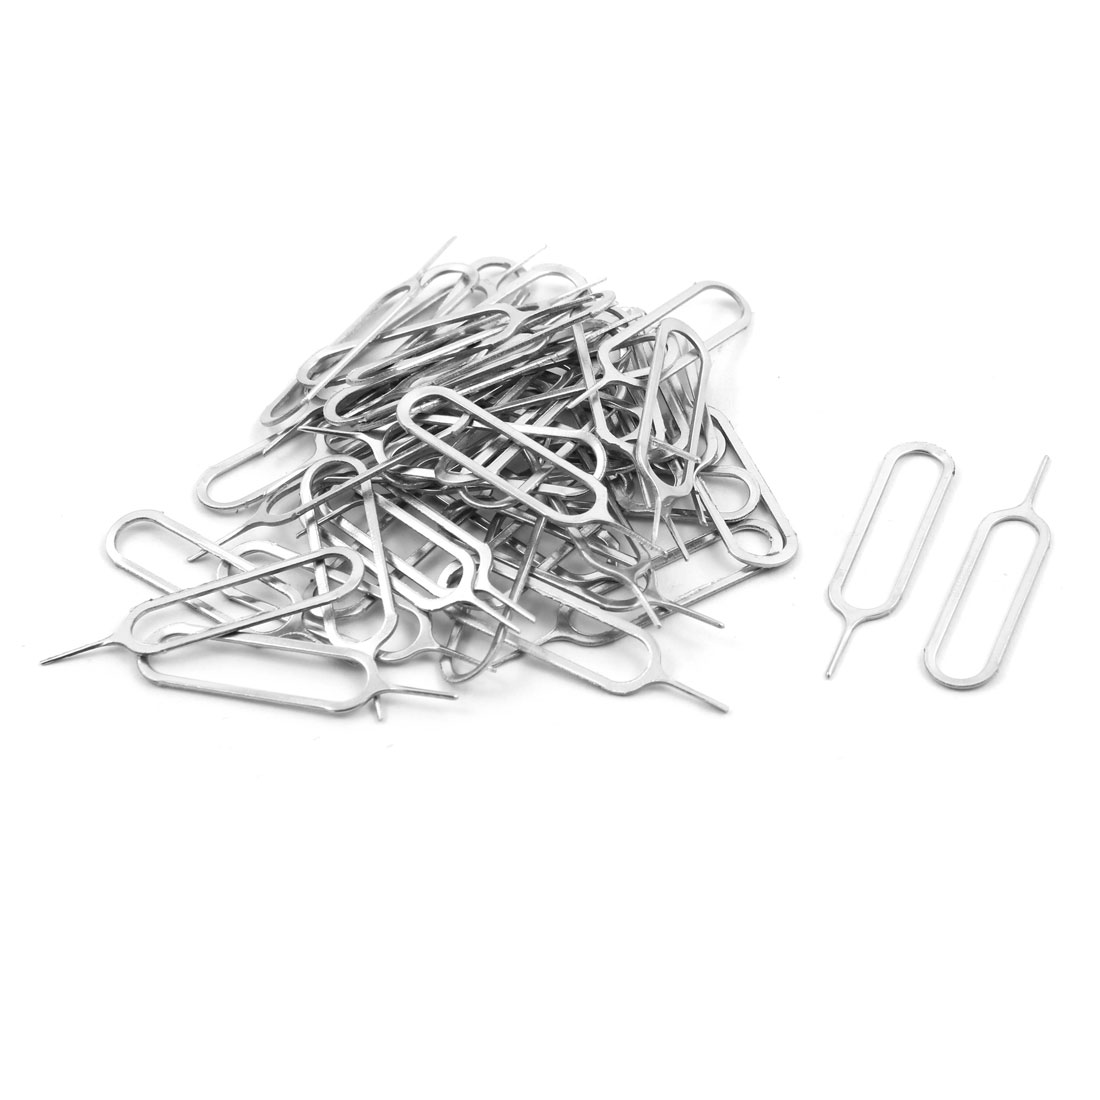 Smartphone Metal SIM Card Needle Tray Remover Eject Tool Key Silver Tone 50pcs